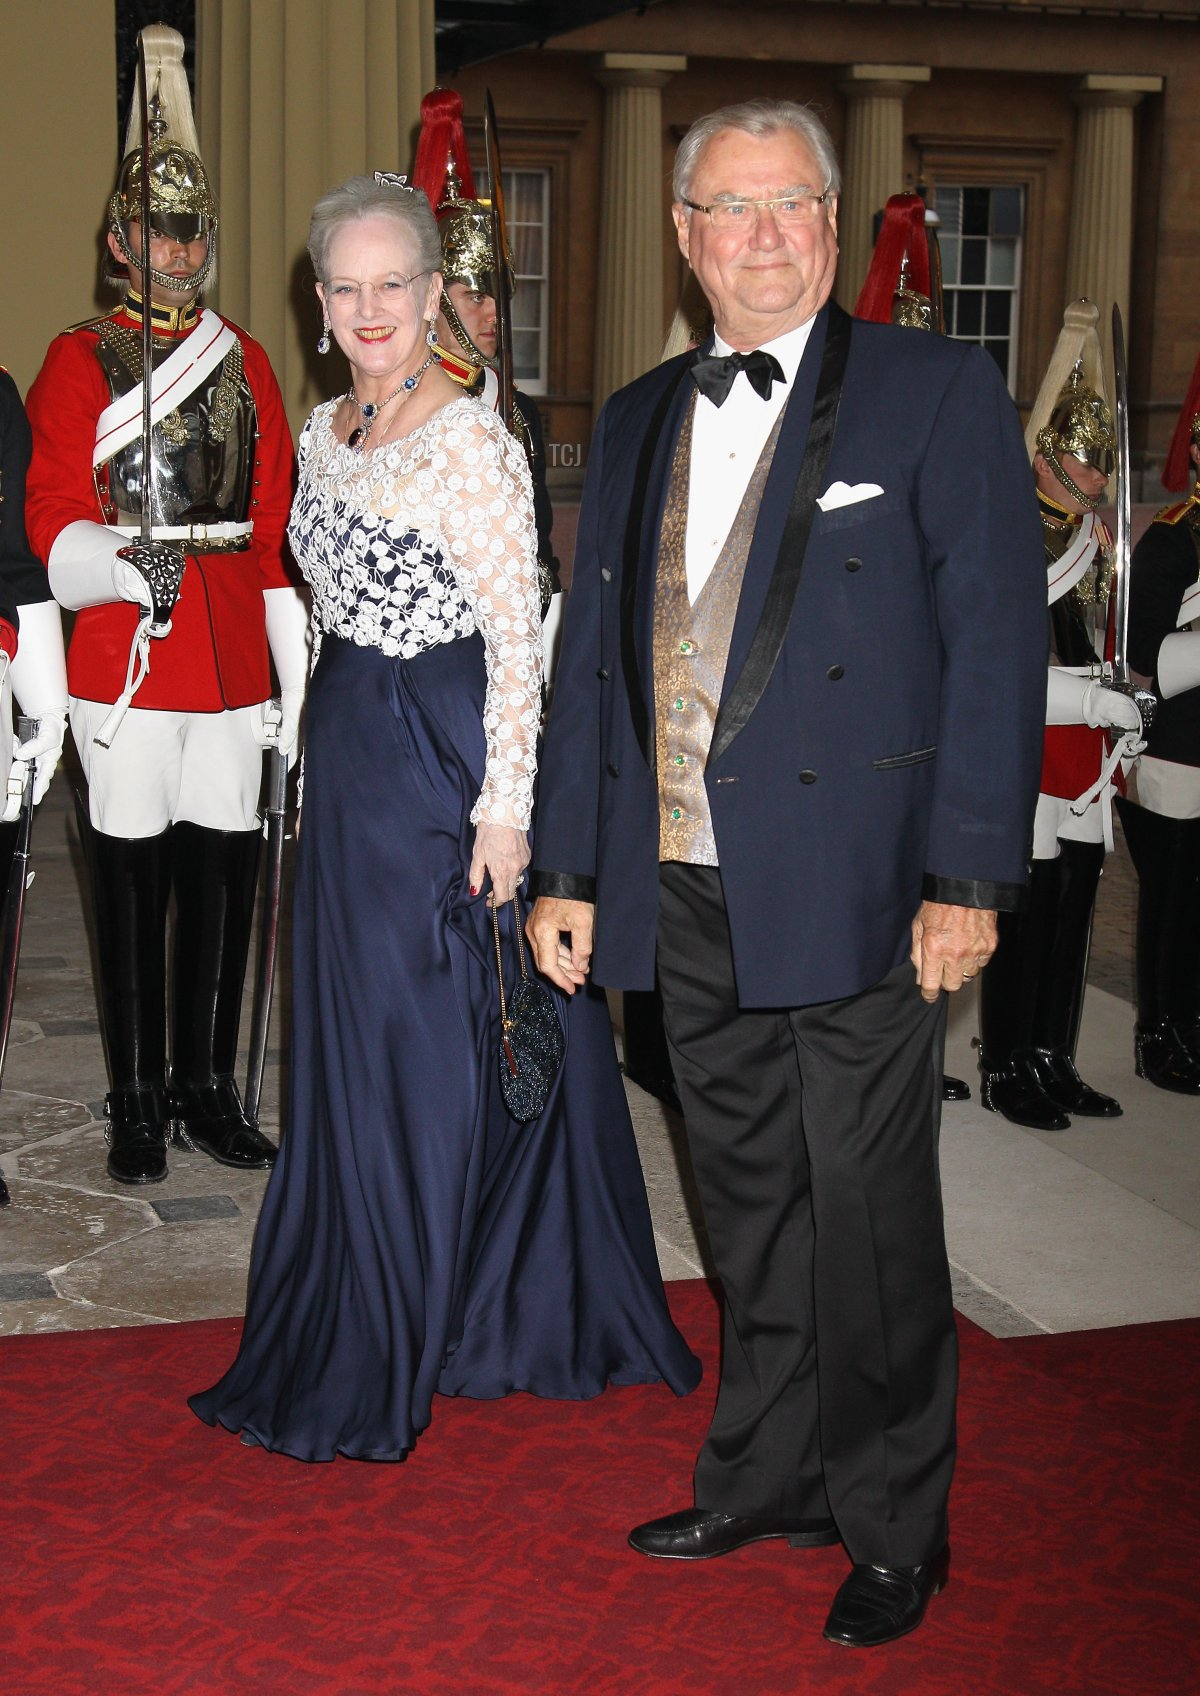 Queen Margarethe II of Denmark and Prince Henrik of Denmark attends a dinner for foreign Sovereigns to commemorate the Diamond Jubilee at Buckingham Palace on May 18, 2012 in London, England